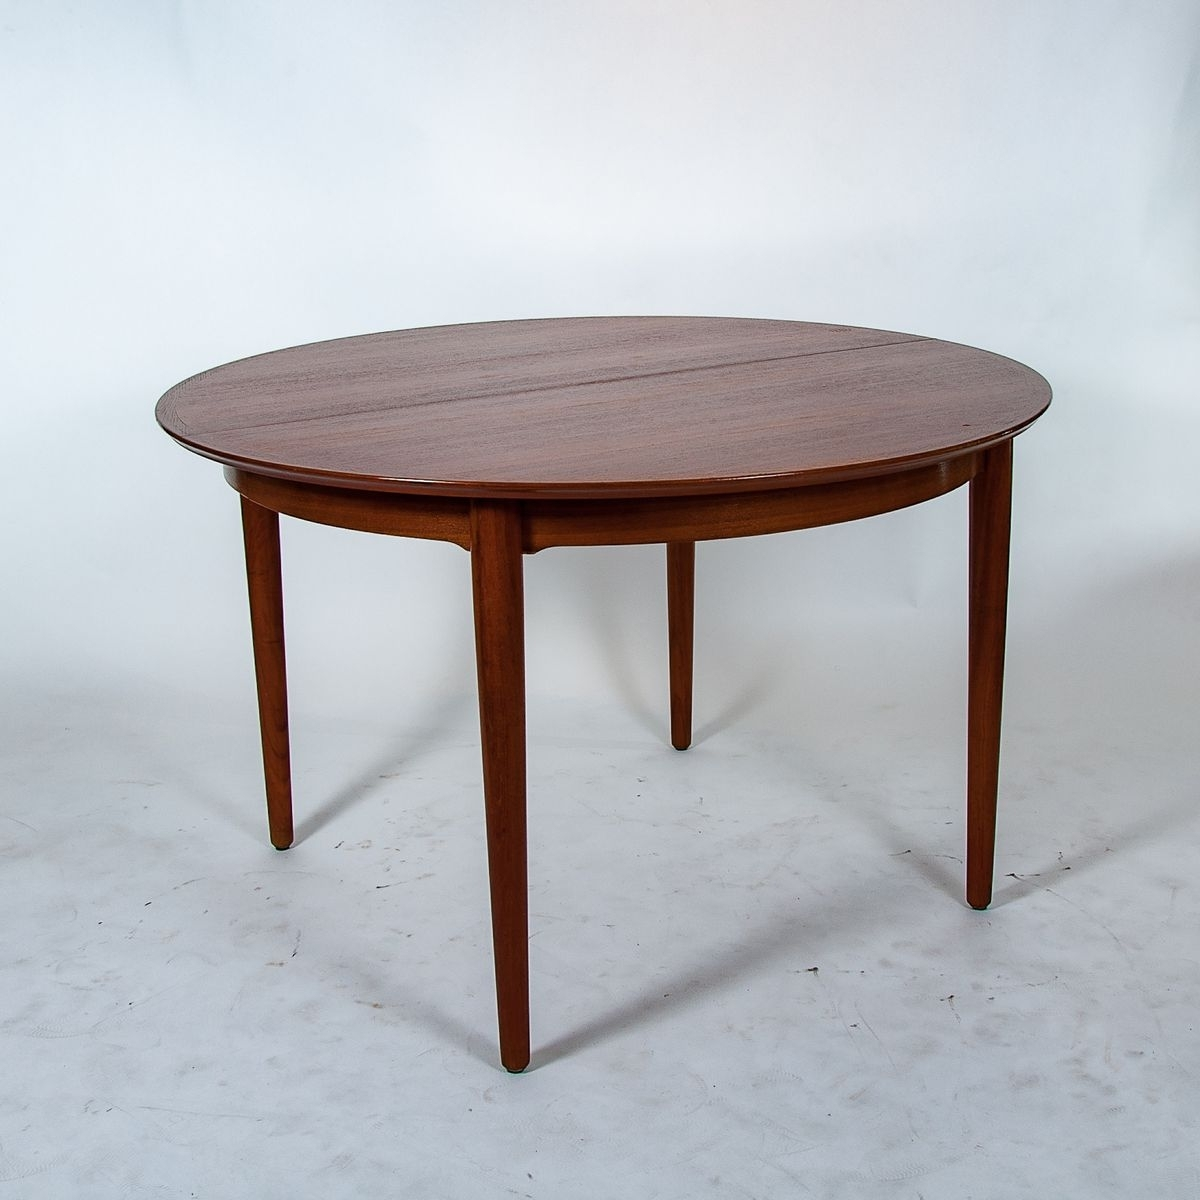 Preferred Mid Century Danish Design Dining Tablearne Vodder For Sibast Within Danish Dining Tables (Gallery 25 of 25)